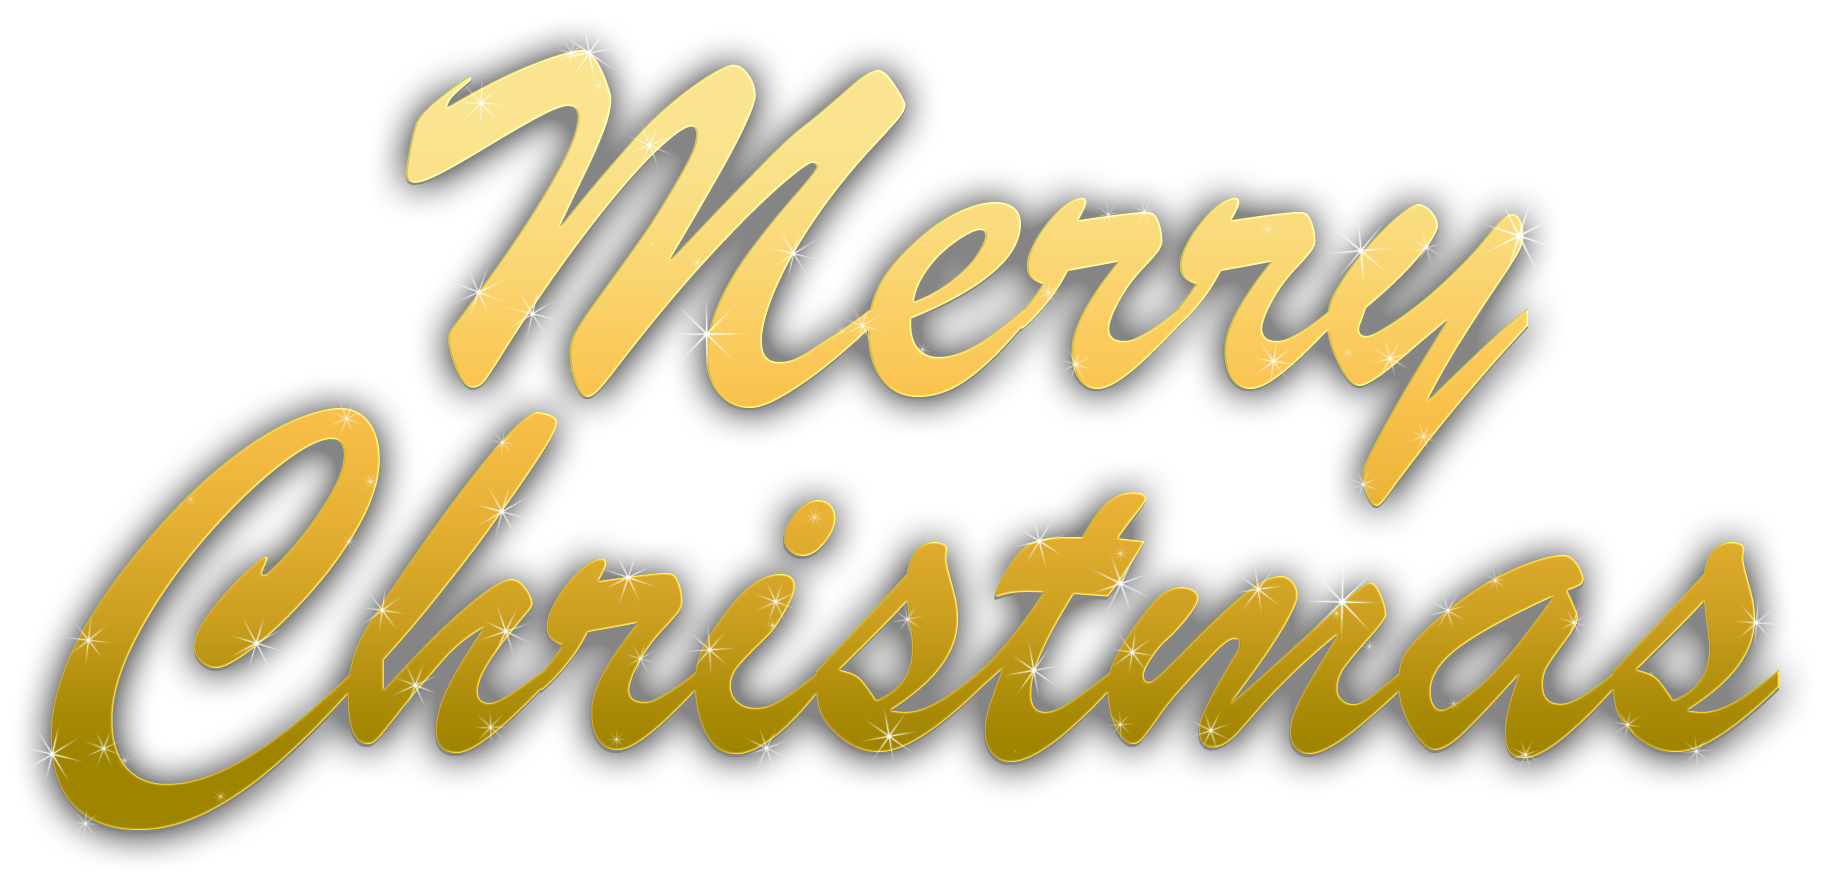 Merry Christmas Text.Merry Christmas Text Png Transparent Merry Christmas Text